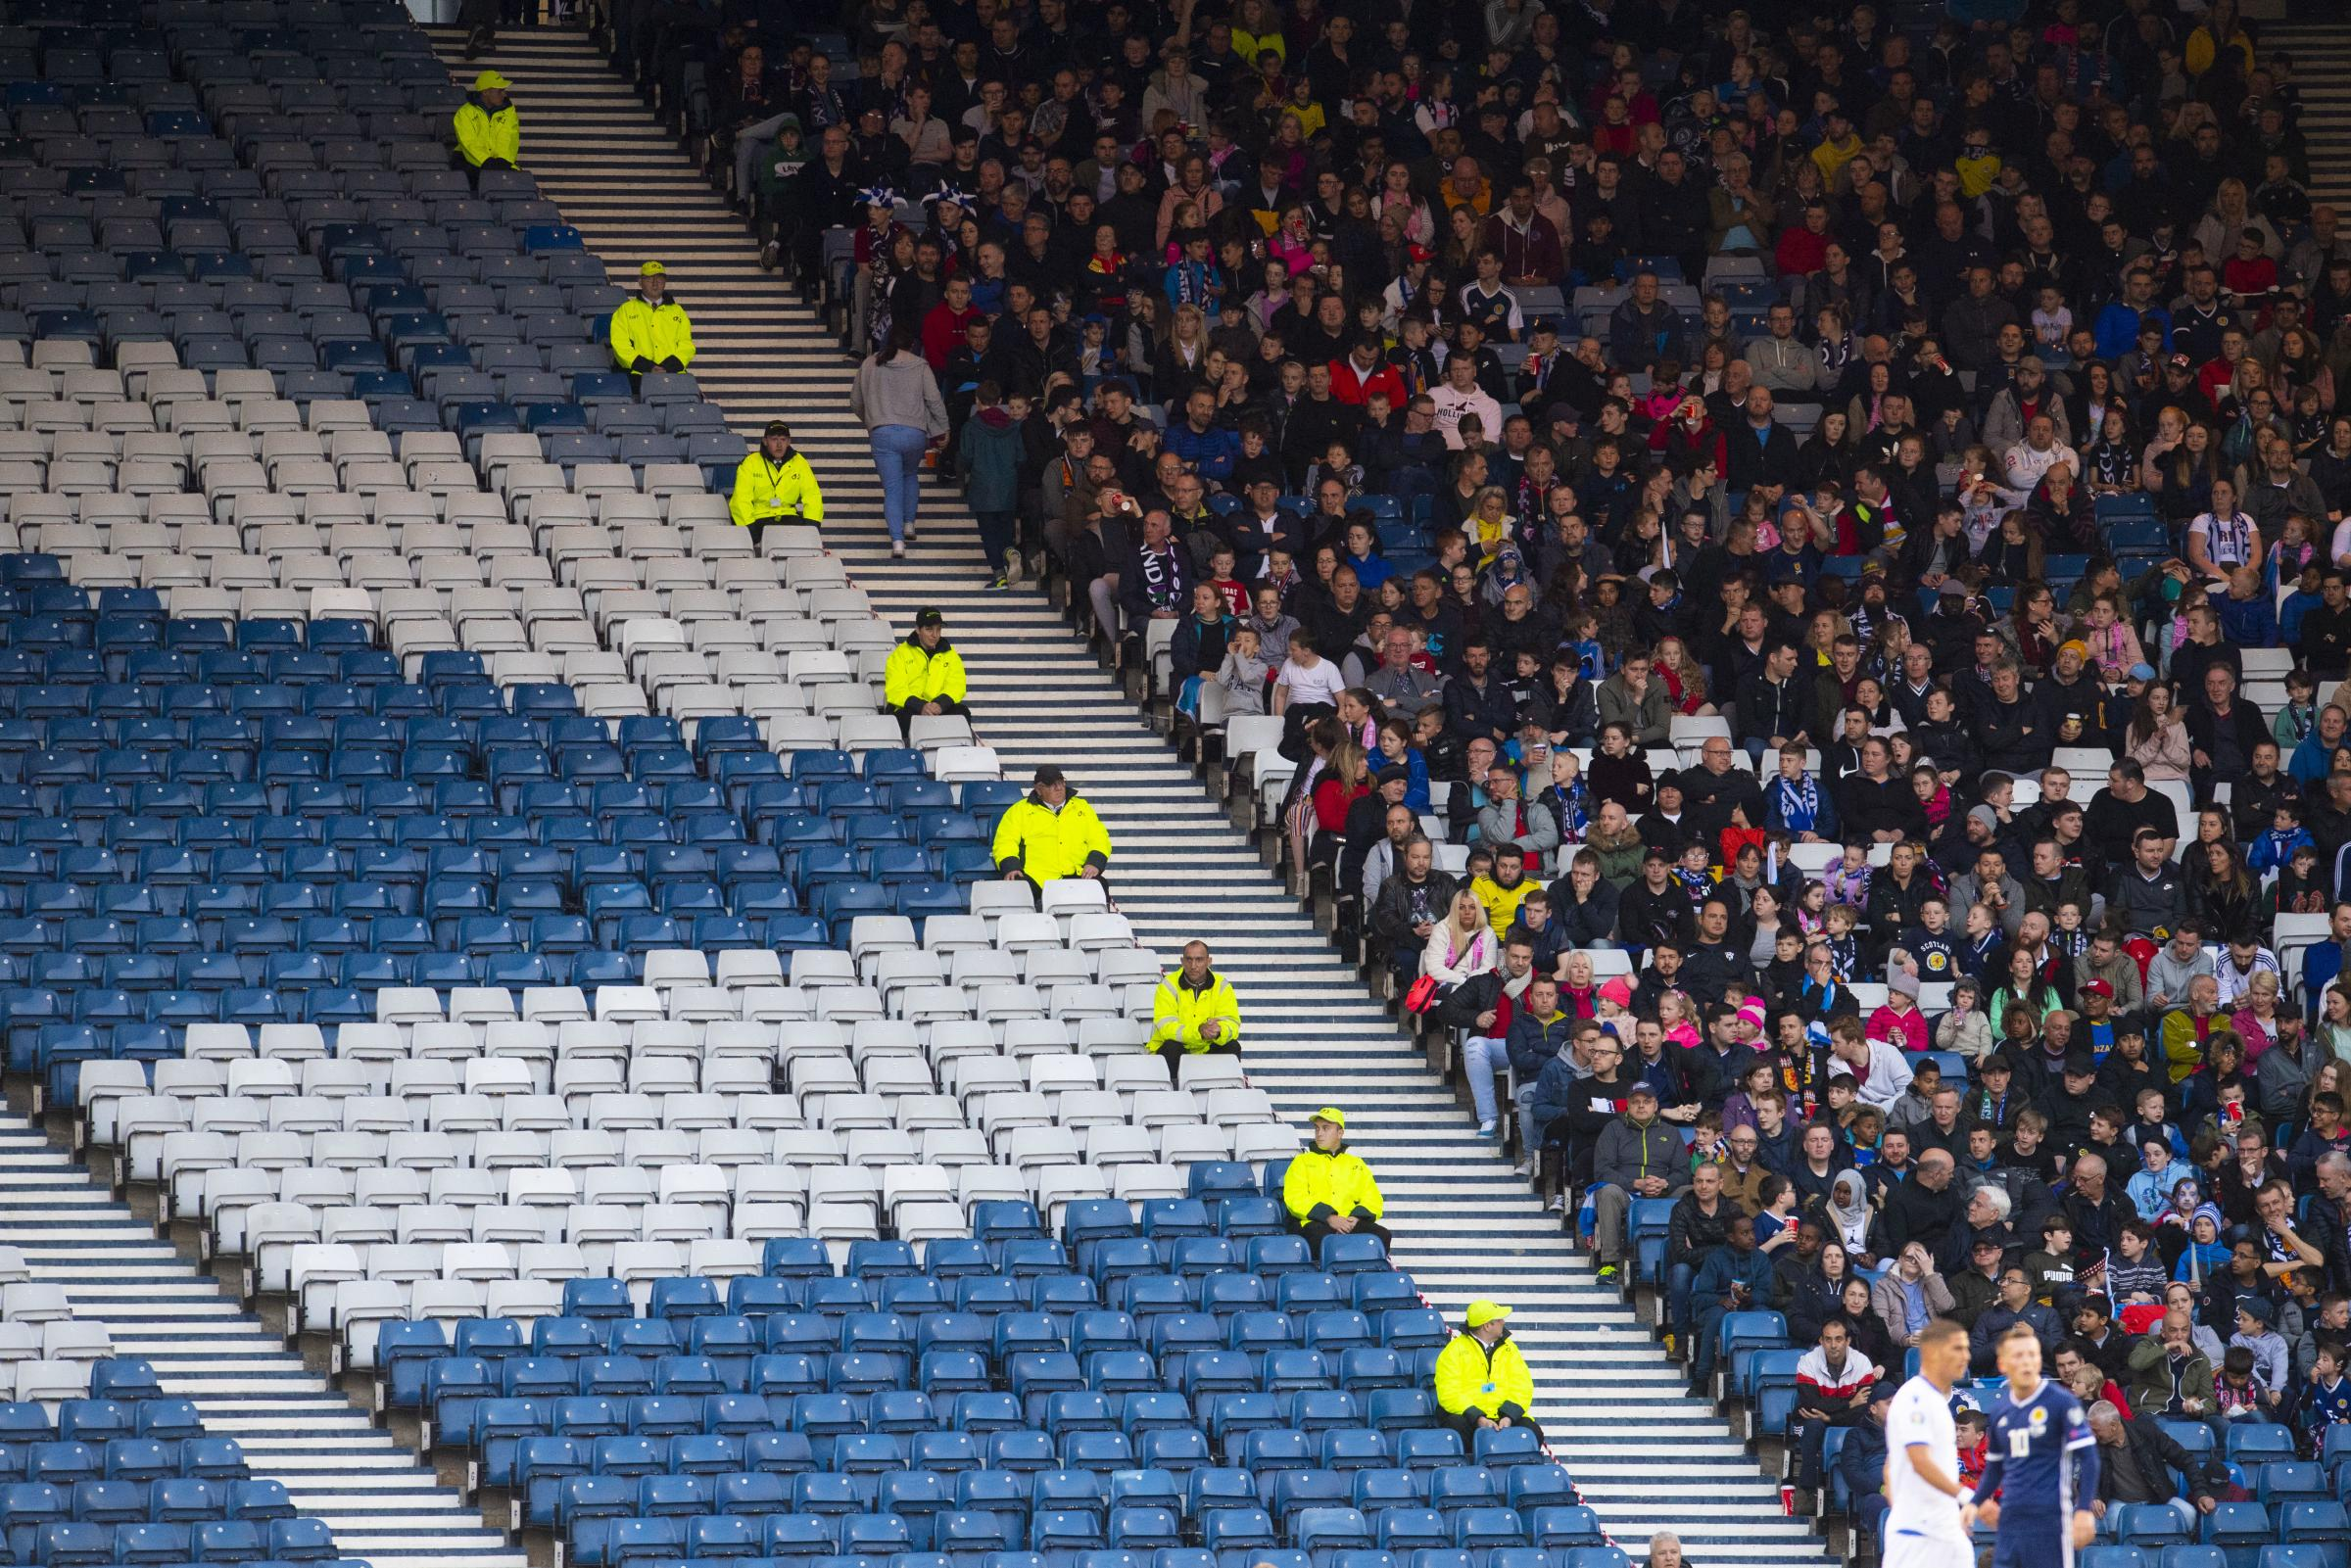 SFA need to take drastic action or risk losing fans forever